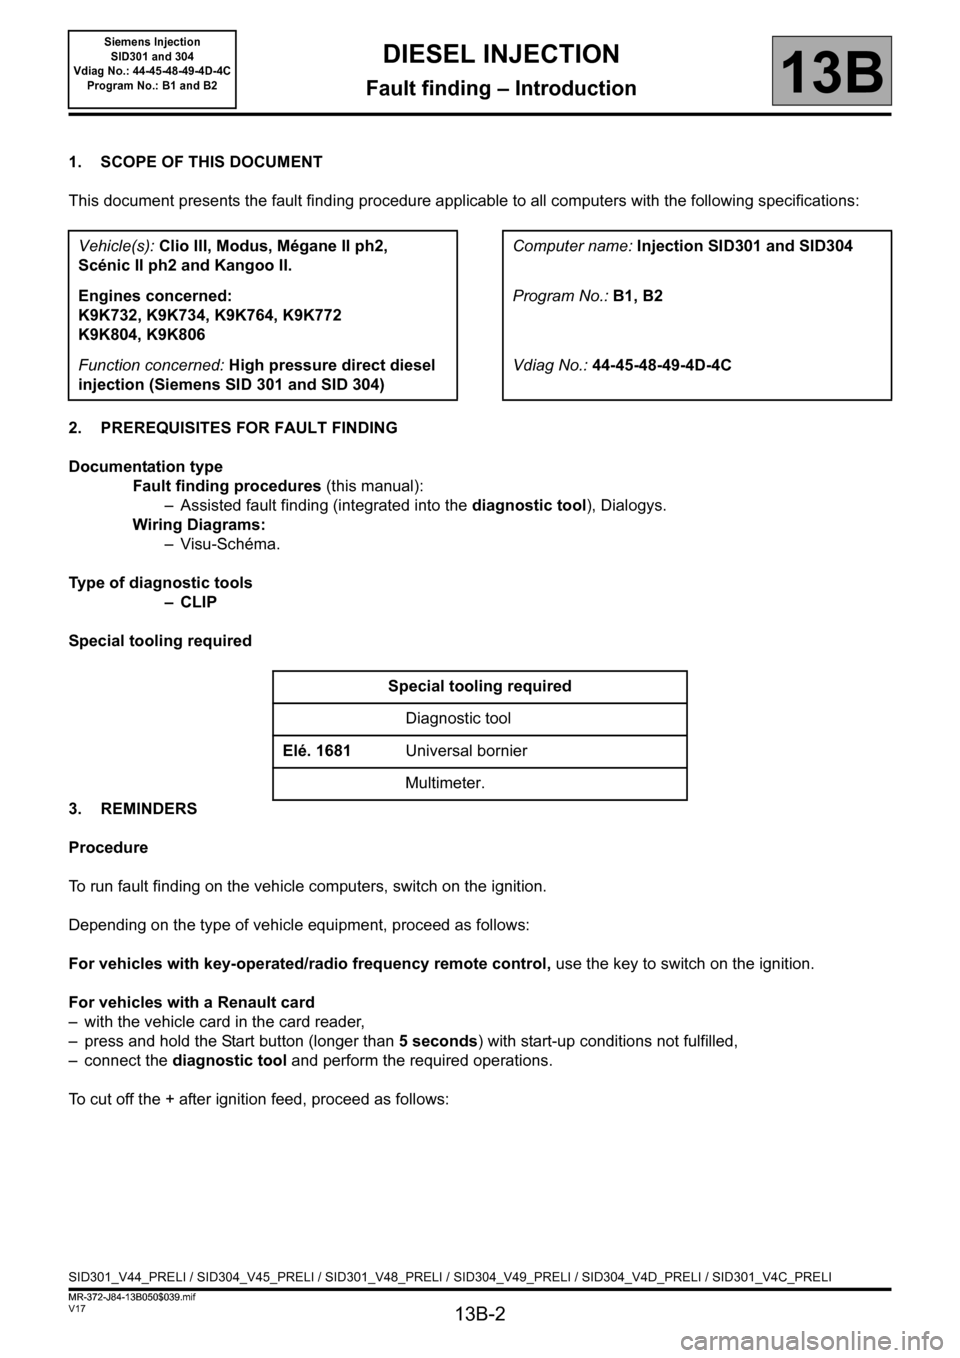 RENAULT SCENIC 2011 J95 / 3.G Engine And Peripherals Siemens Injection Workshop Manual, Page 2